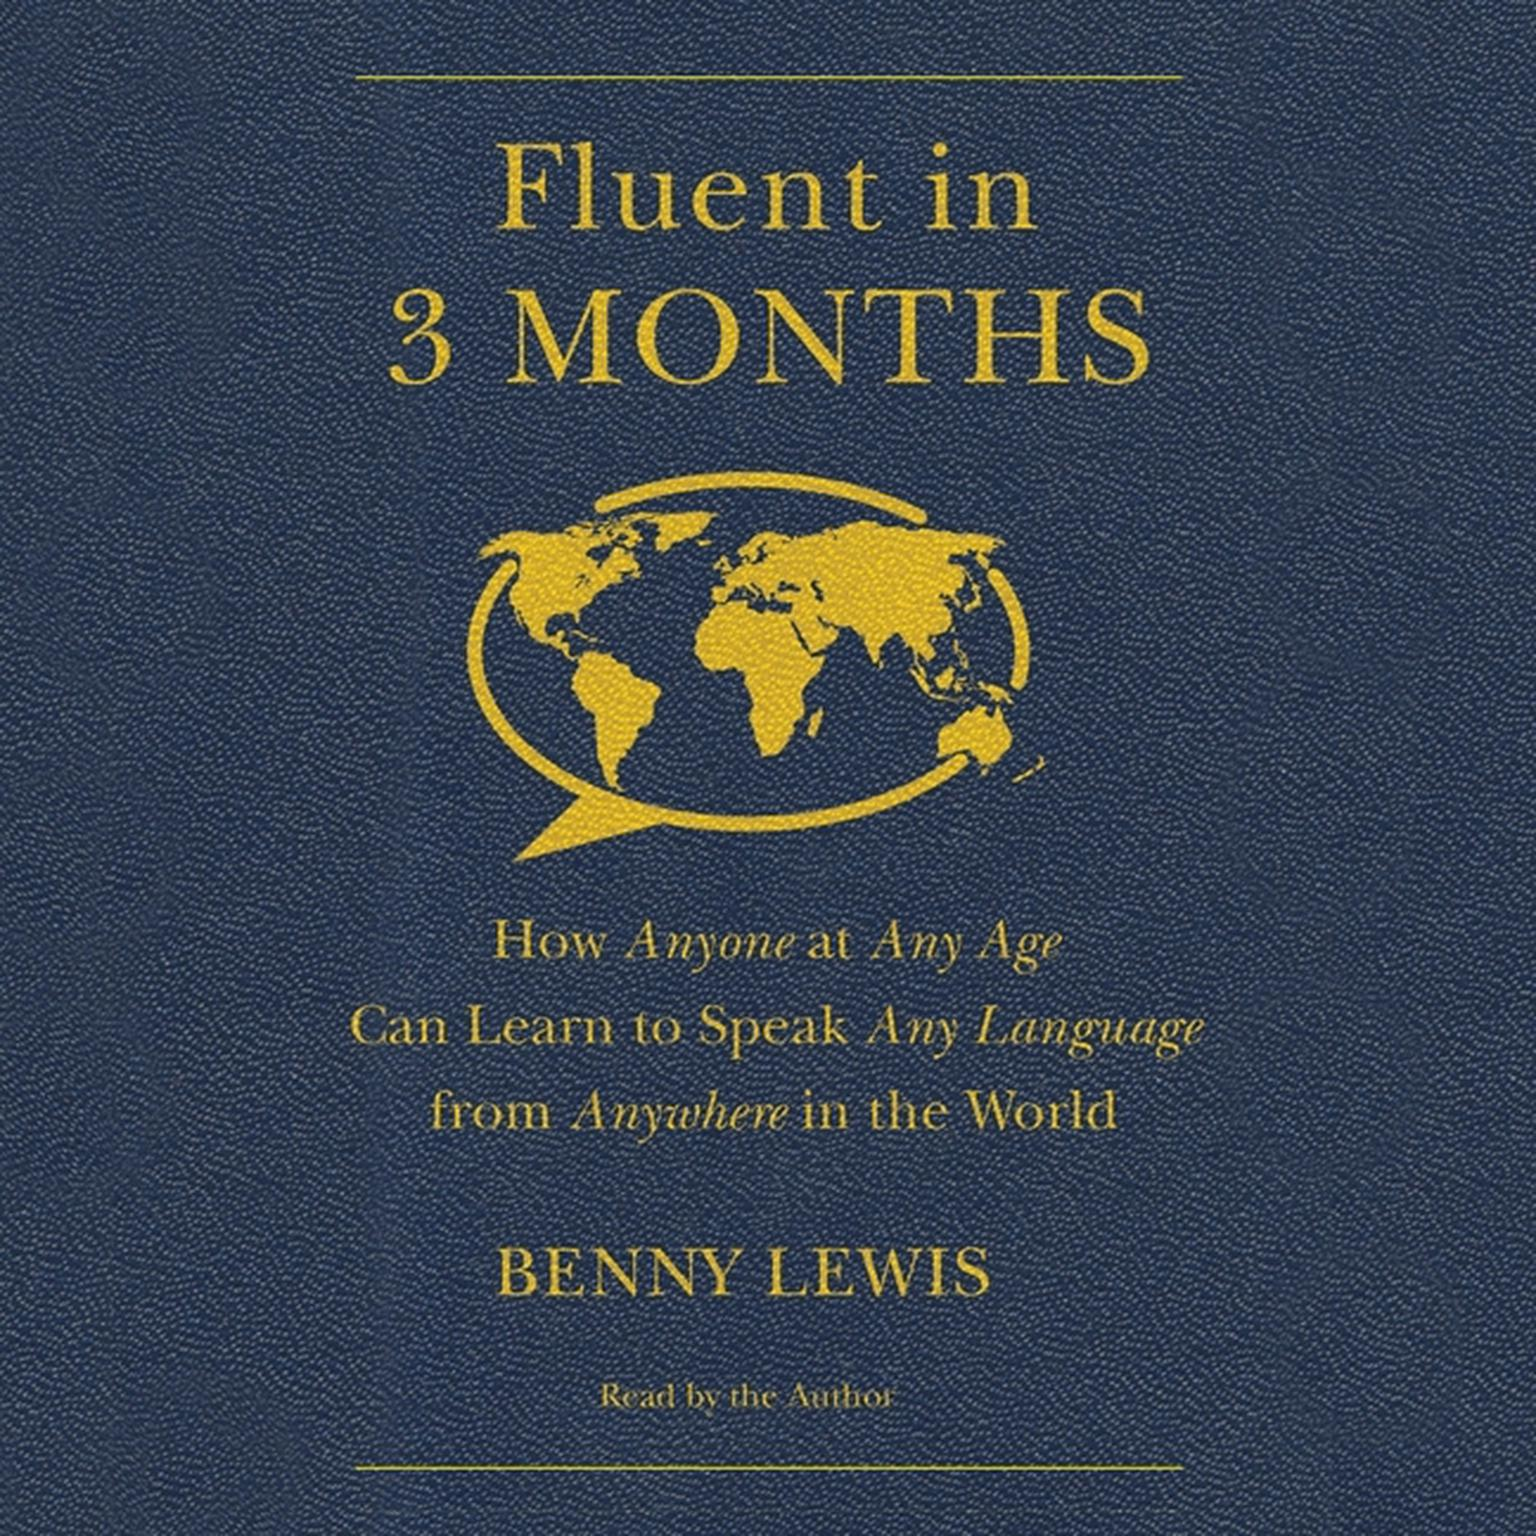 Printable Fluent in 3 Months: How Anyone at Any Age Can Learn to Speak Any Language from Anywhere in the World Audiobook Cover Art